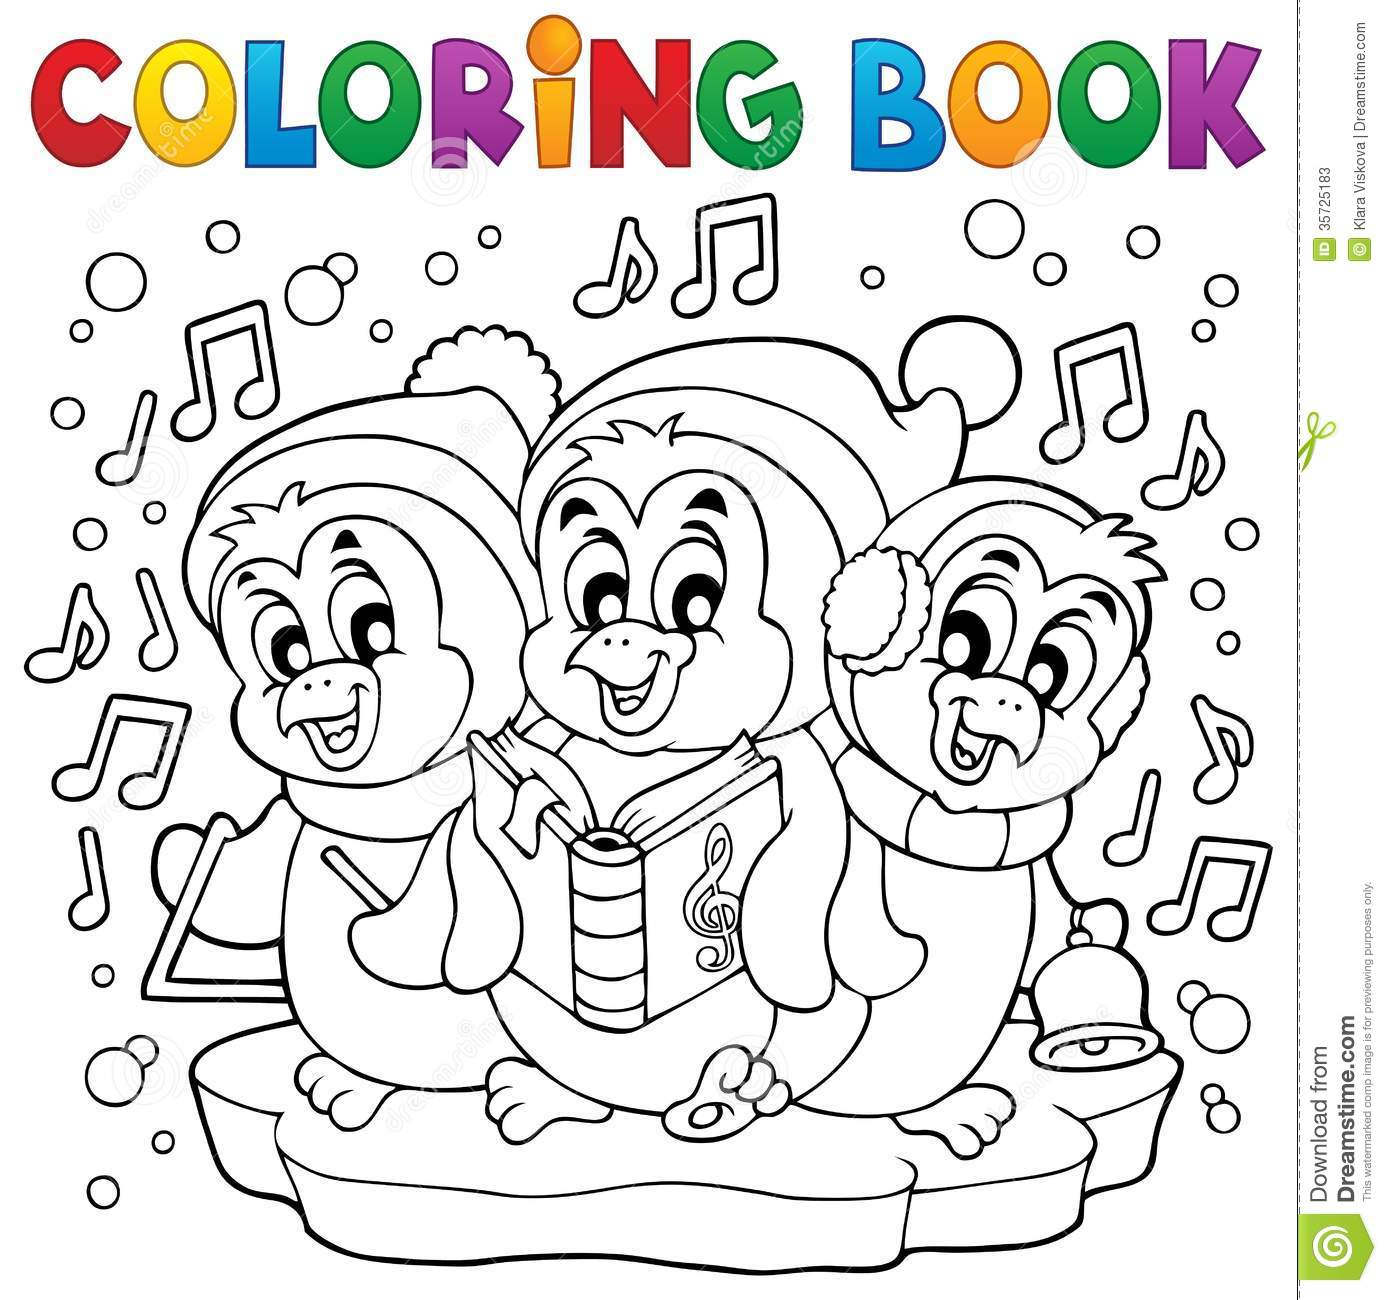 coloring book cute penguins 4 stock photos image 35725183